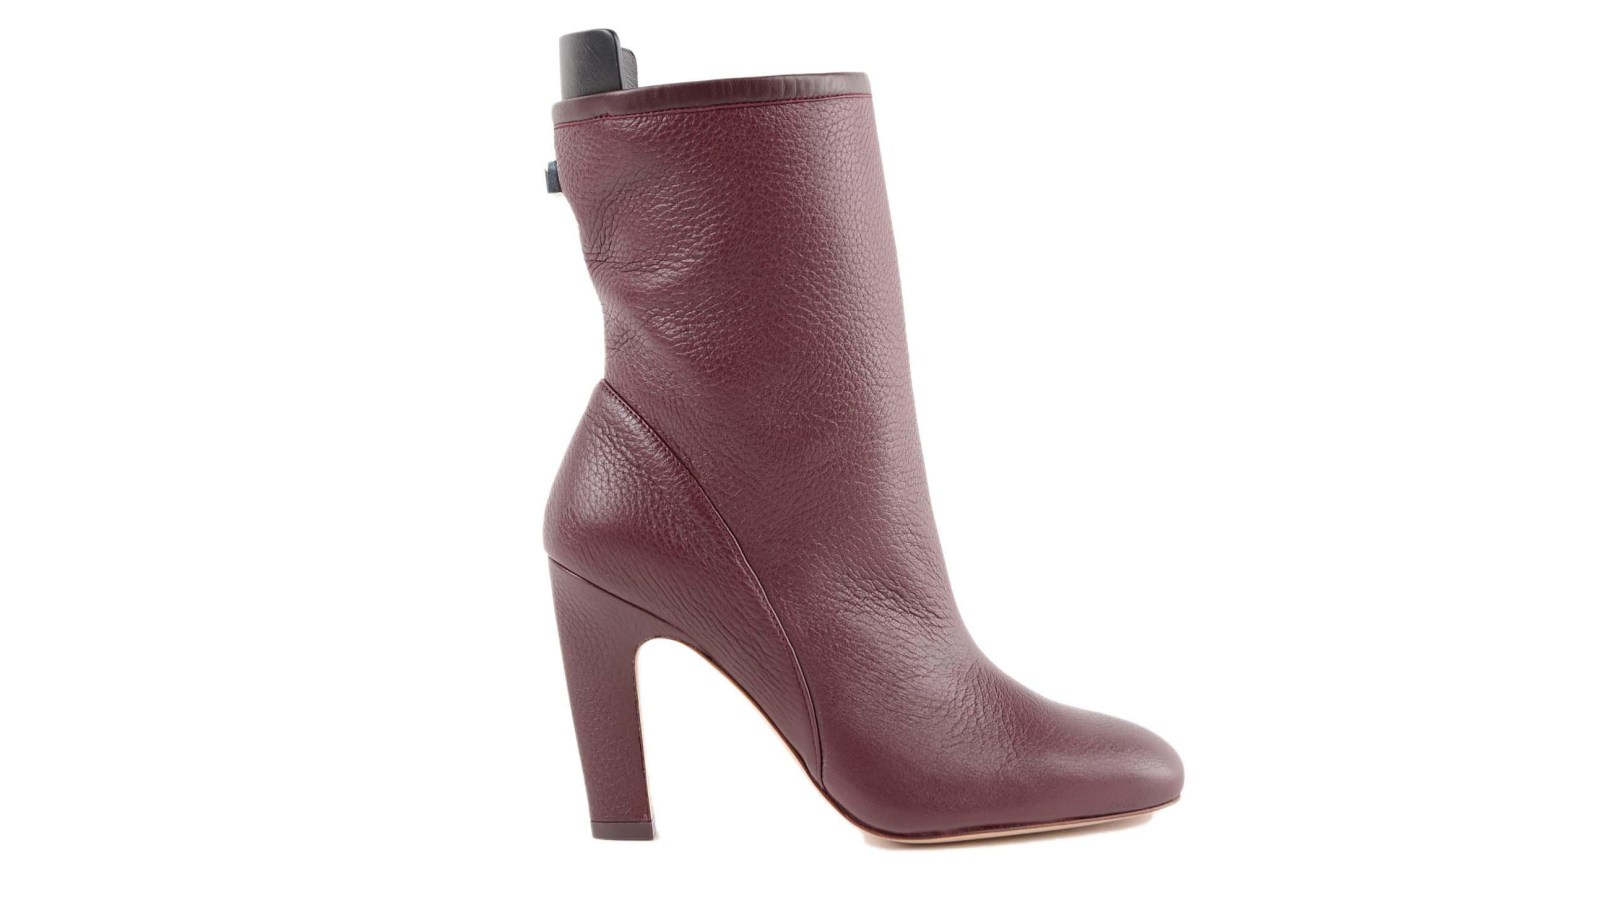 c38d06bc73fb We're Heading Over to Saks Fifth Avenue for These Designer Boots. By  Isabella Zaydenberg. stuart-weitzman-cabernet